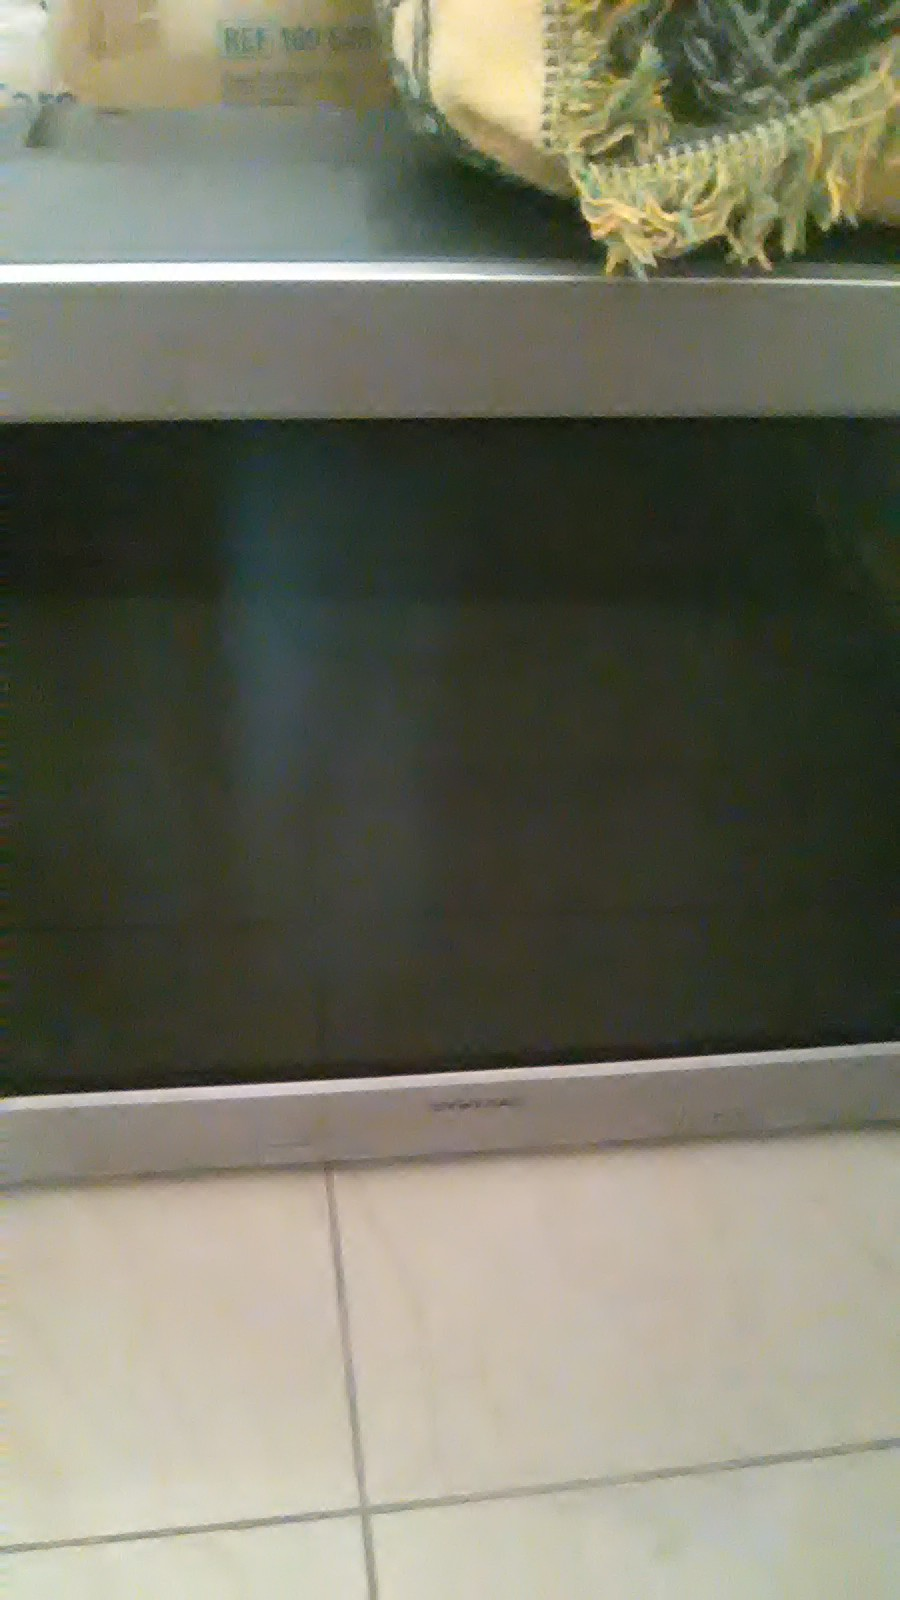 70CM SONY BOX TV